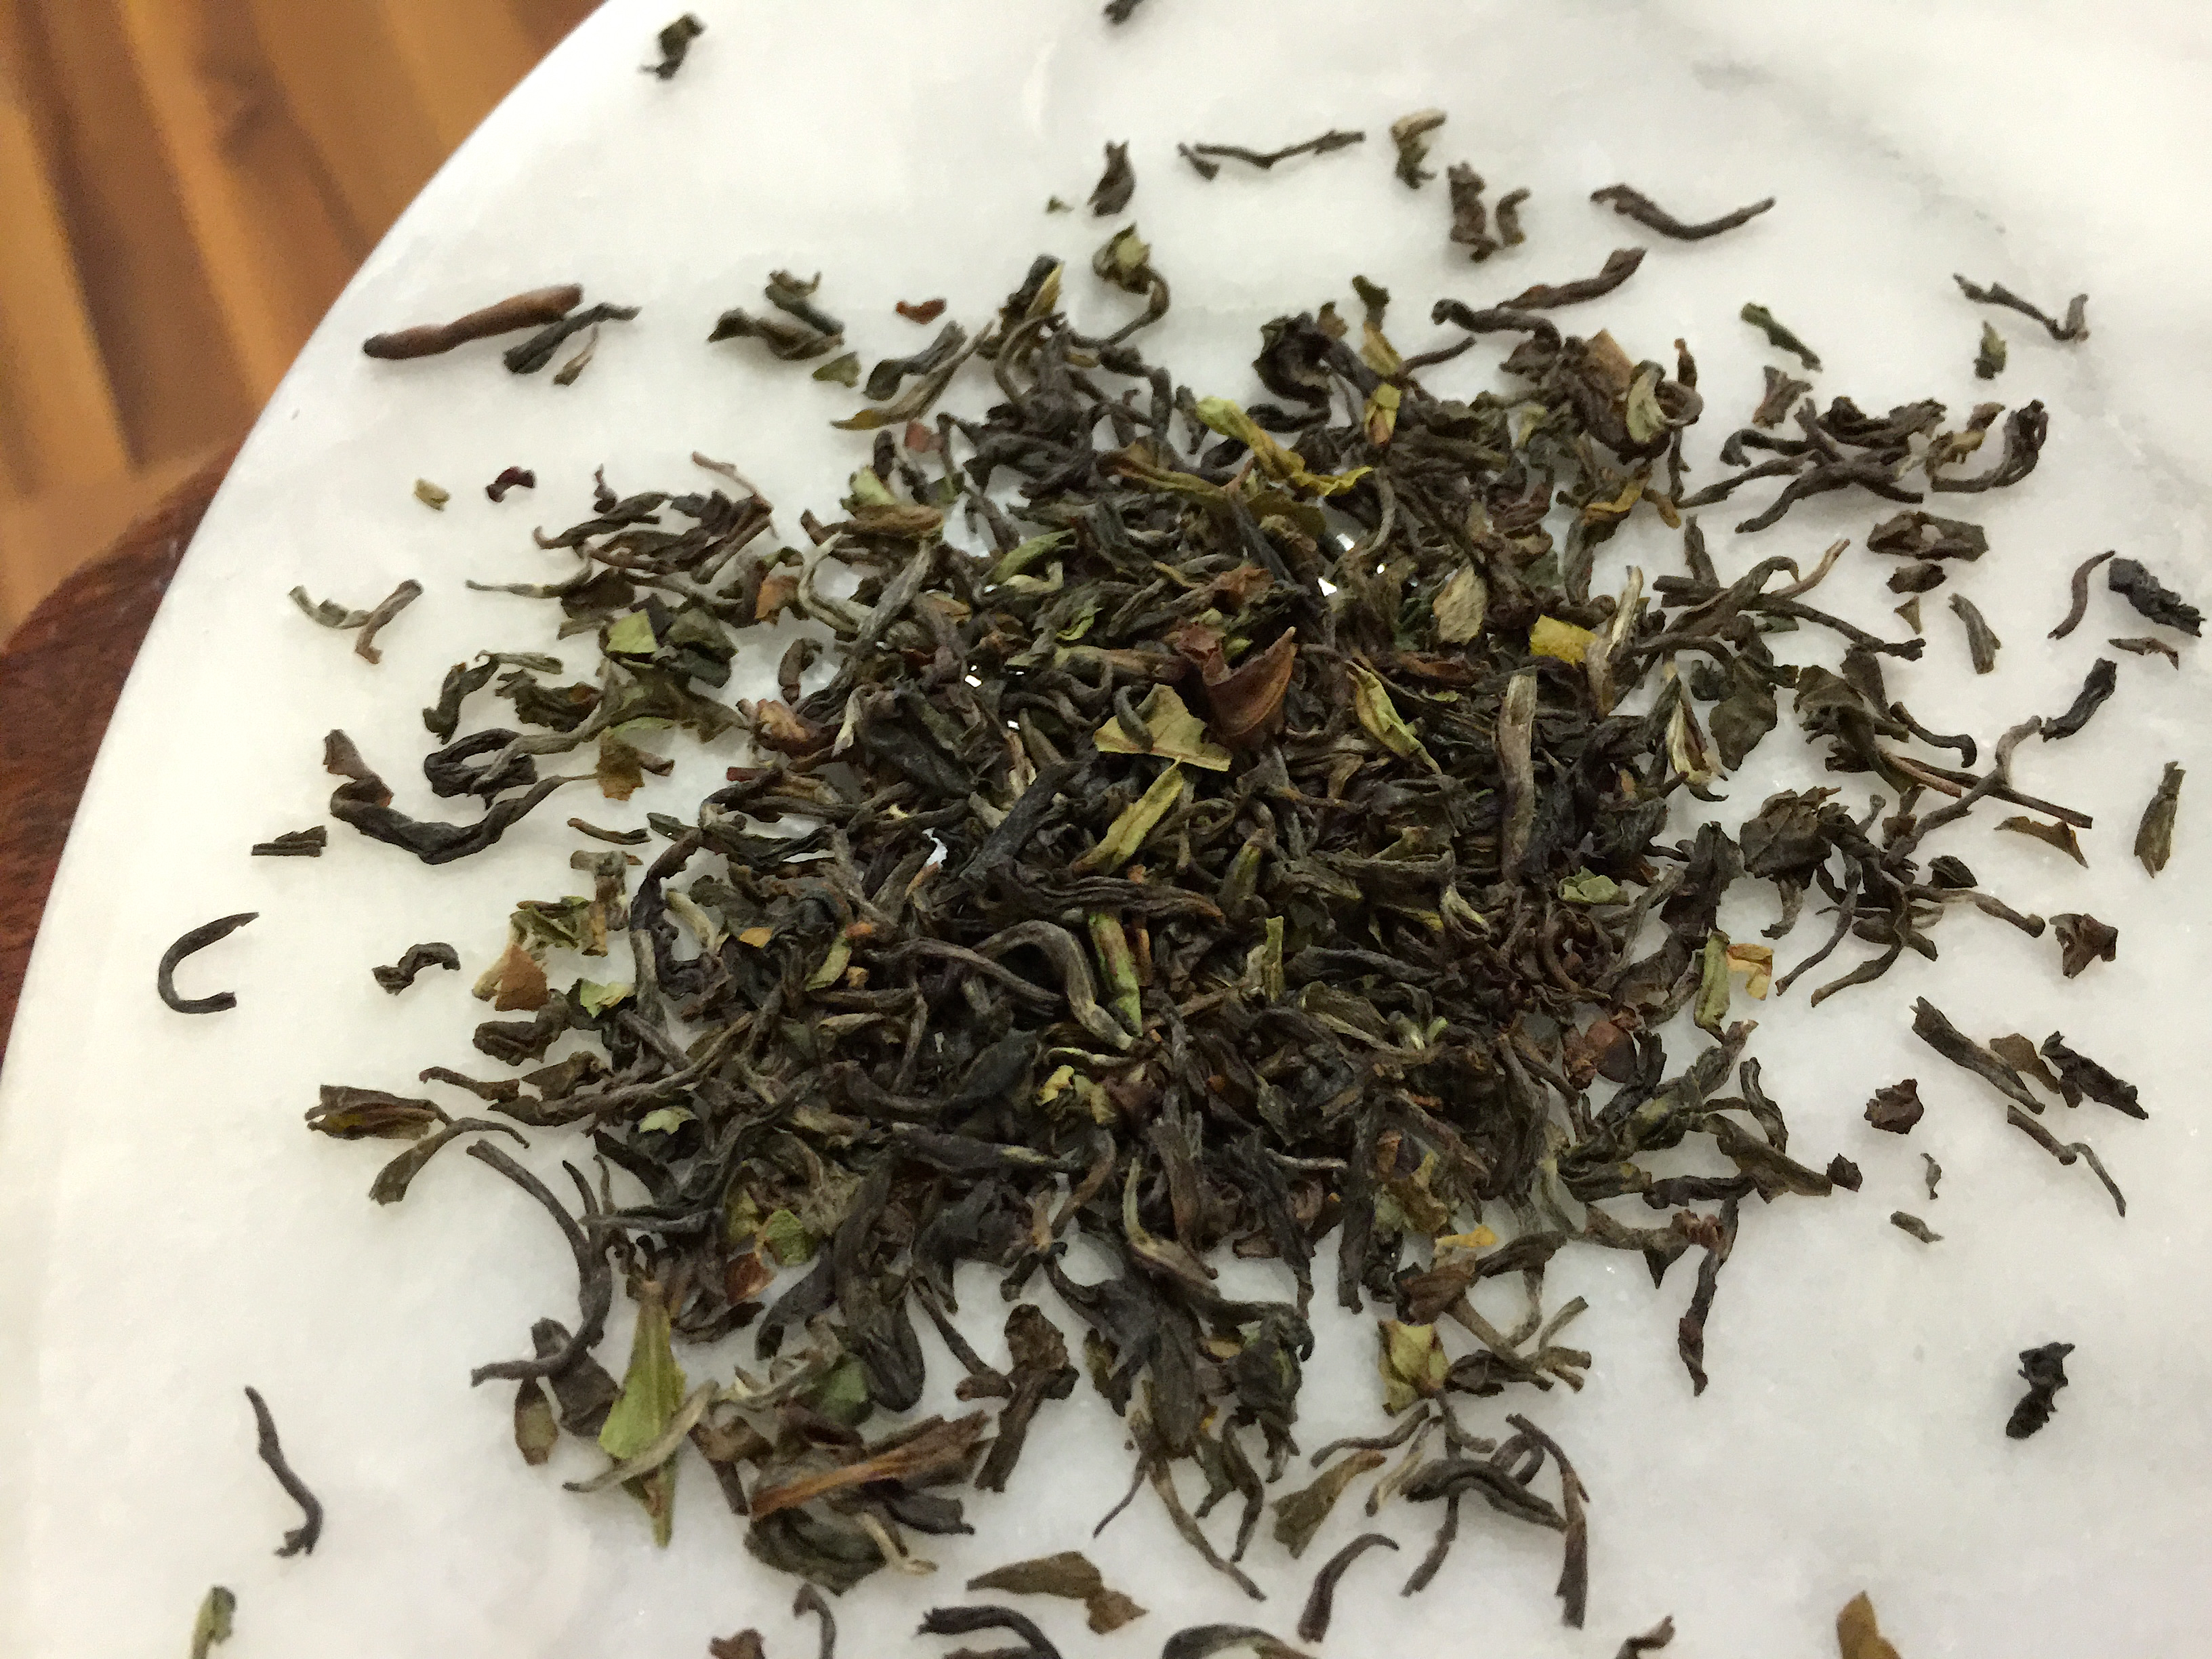 Darjeeling de Triomphe Loose Leaf by Jocilyn Mors is licensed under a Creative Commons Attribution-ShareAlike 4.0 International License.